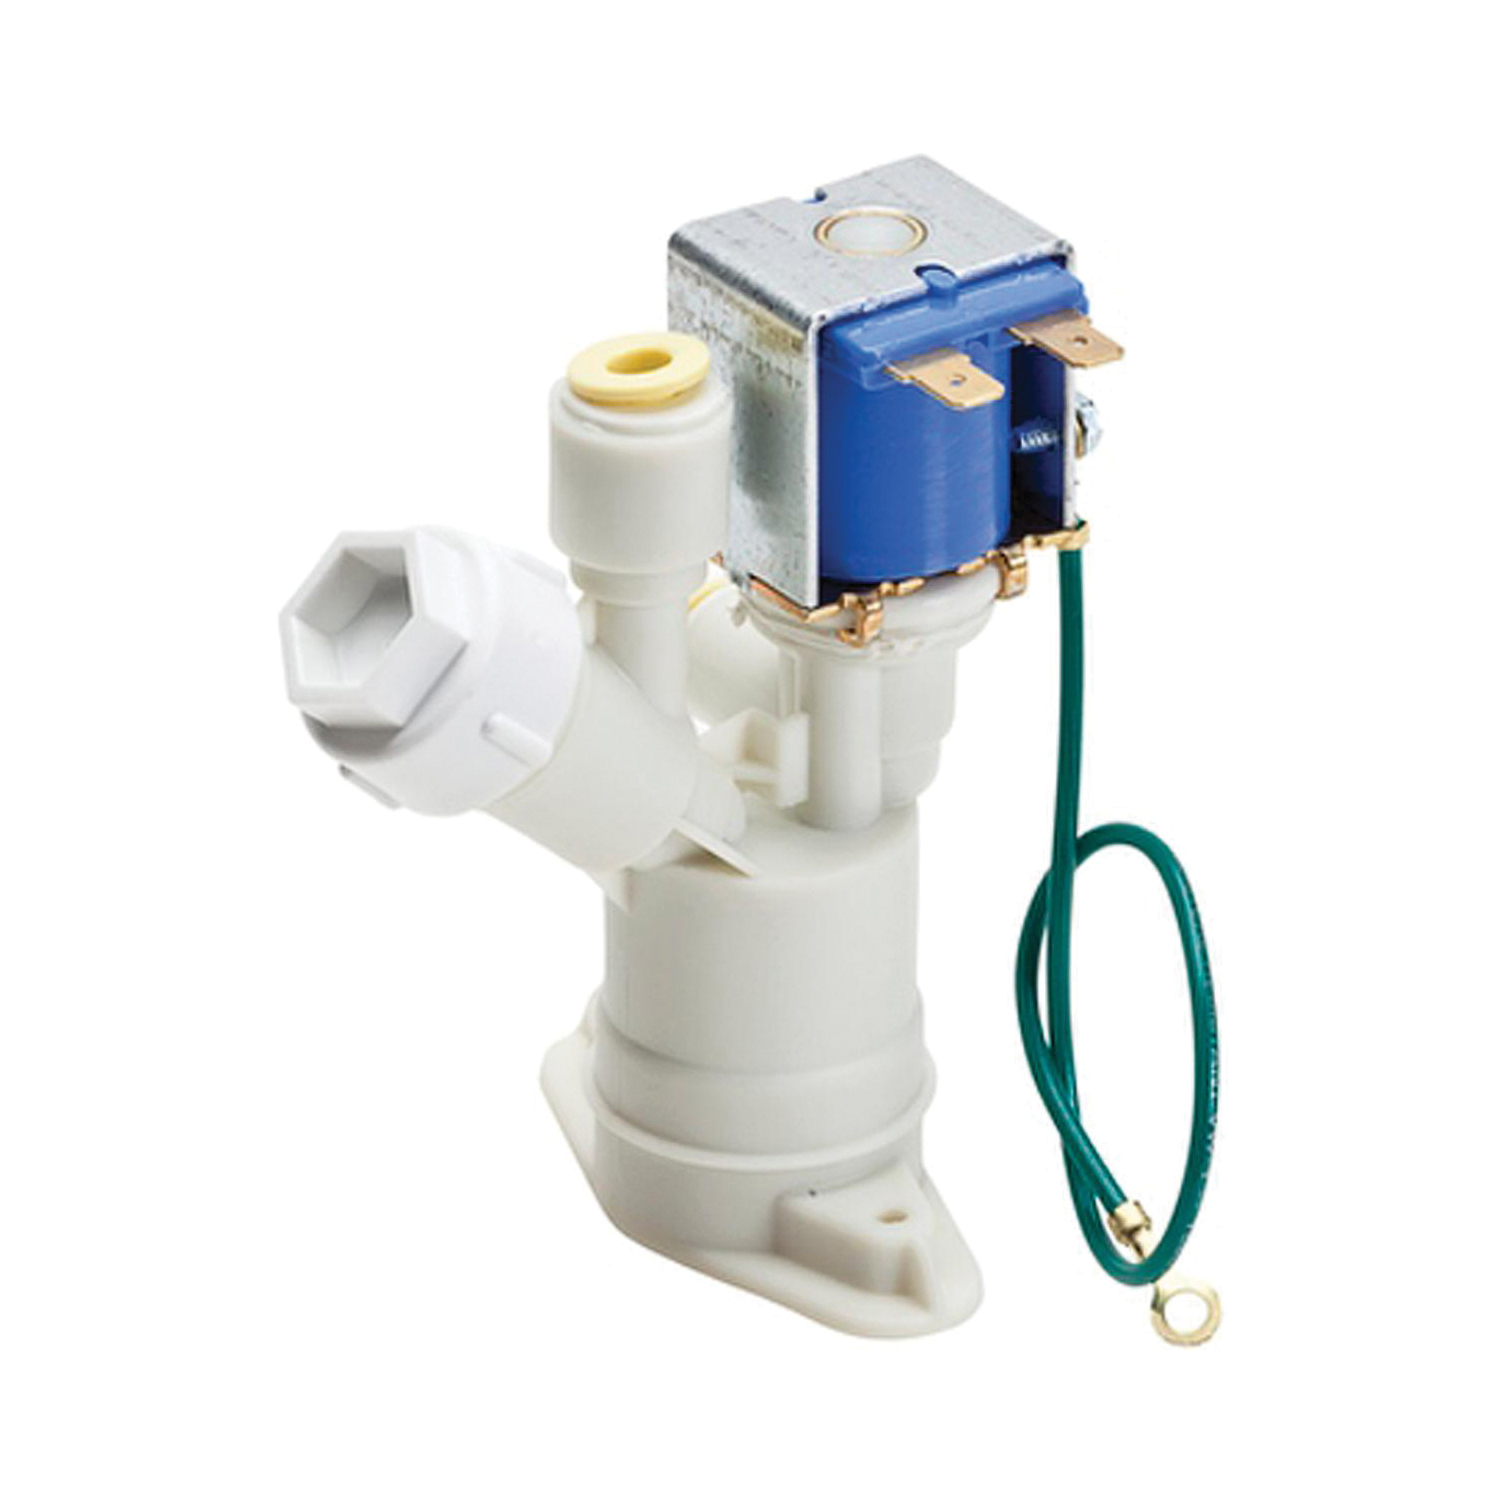 Elkay® 98466C LKC/HT Replacement Solenoid Valve/Regulator Assembly Kit, For Use With EZ/HTV Water Cooler Models (Rev C and Up), Import